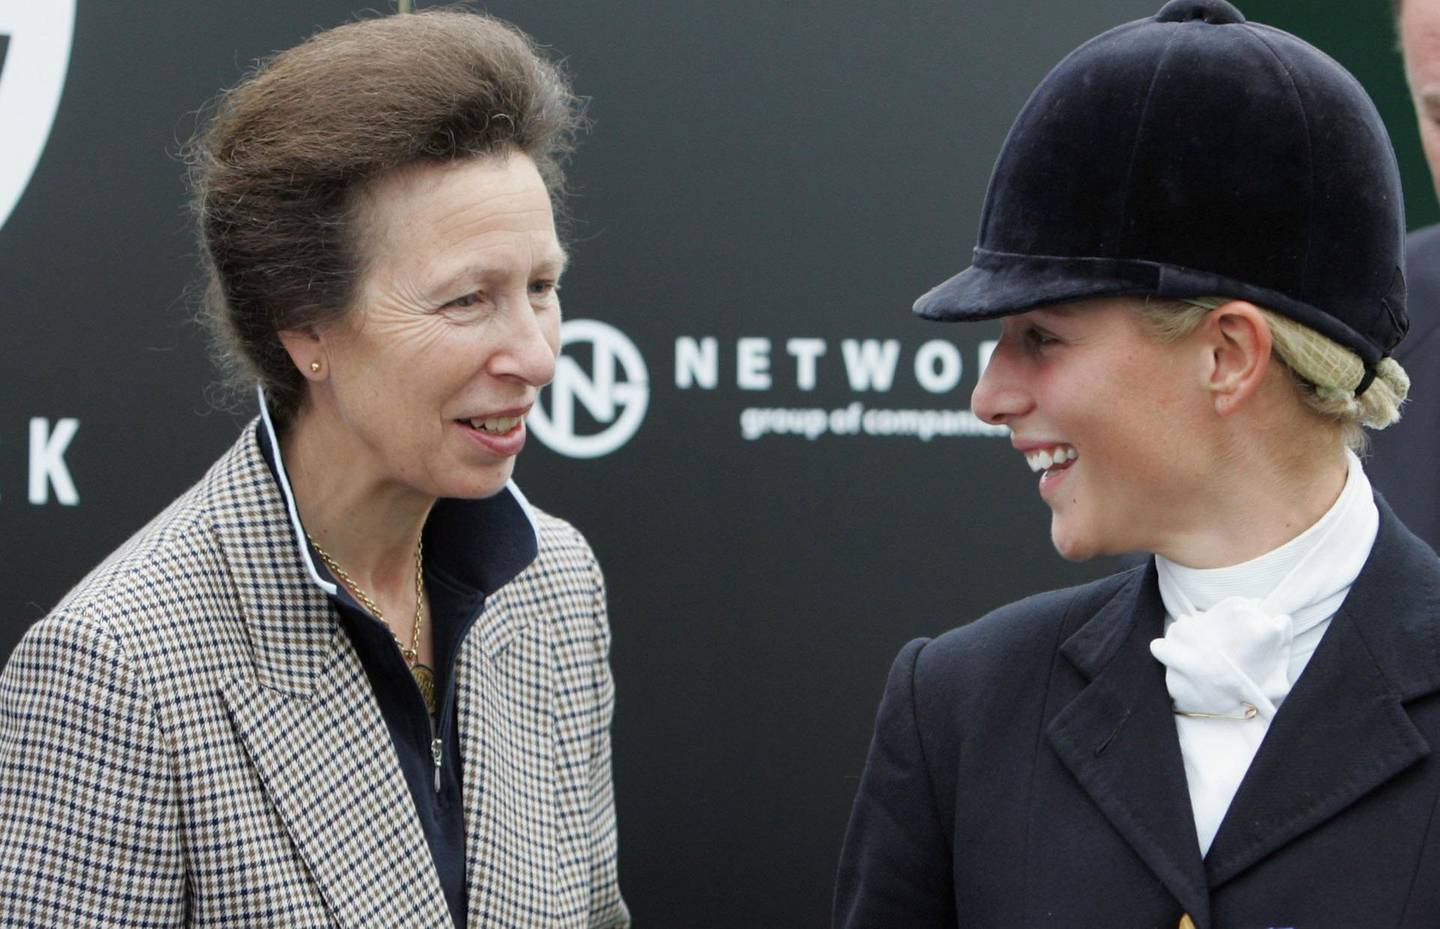 GATCOMBE, ENGLAND - SEPTEMBER 17: 2006 World Champion, Zara Phillips shares a joke with her mother, Princess Anne, Princess Royal as she is presented with an award during the Gatcombe Horse Trials August 17, 2006, Gatcombe, England. (Photo by Matt Cardy/Getty Images)